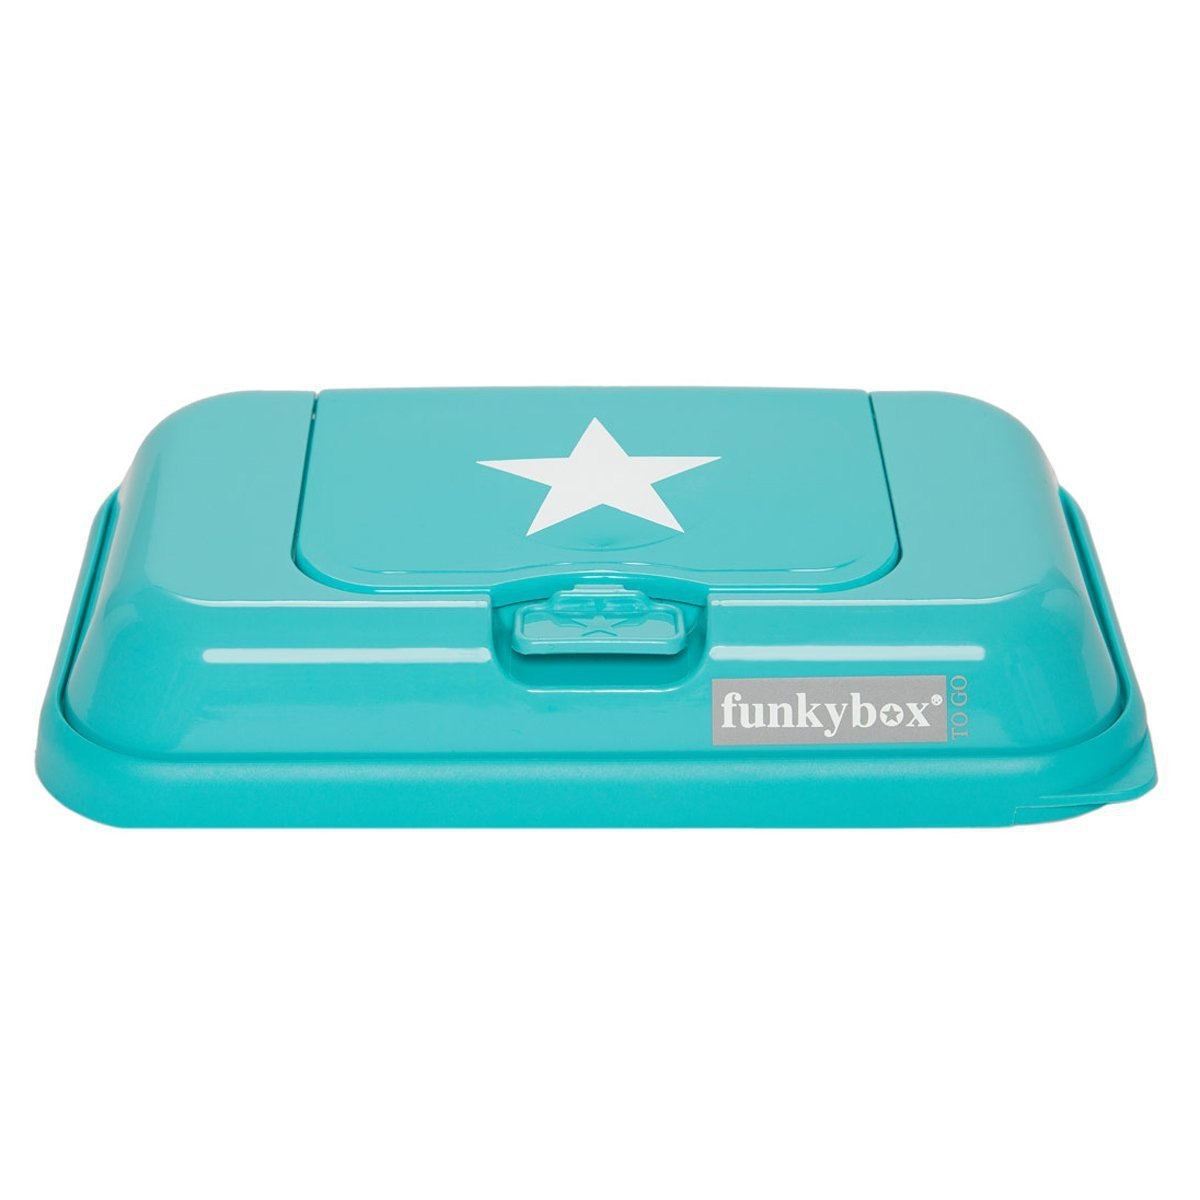 FunkyBox Nomad Polishing Cloth Funky Box to Go with Star Turquoise FBTG00